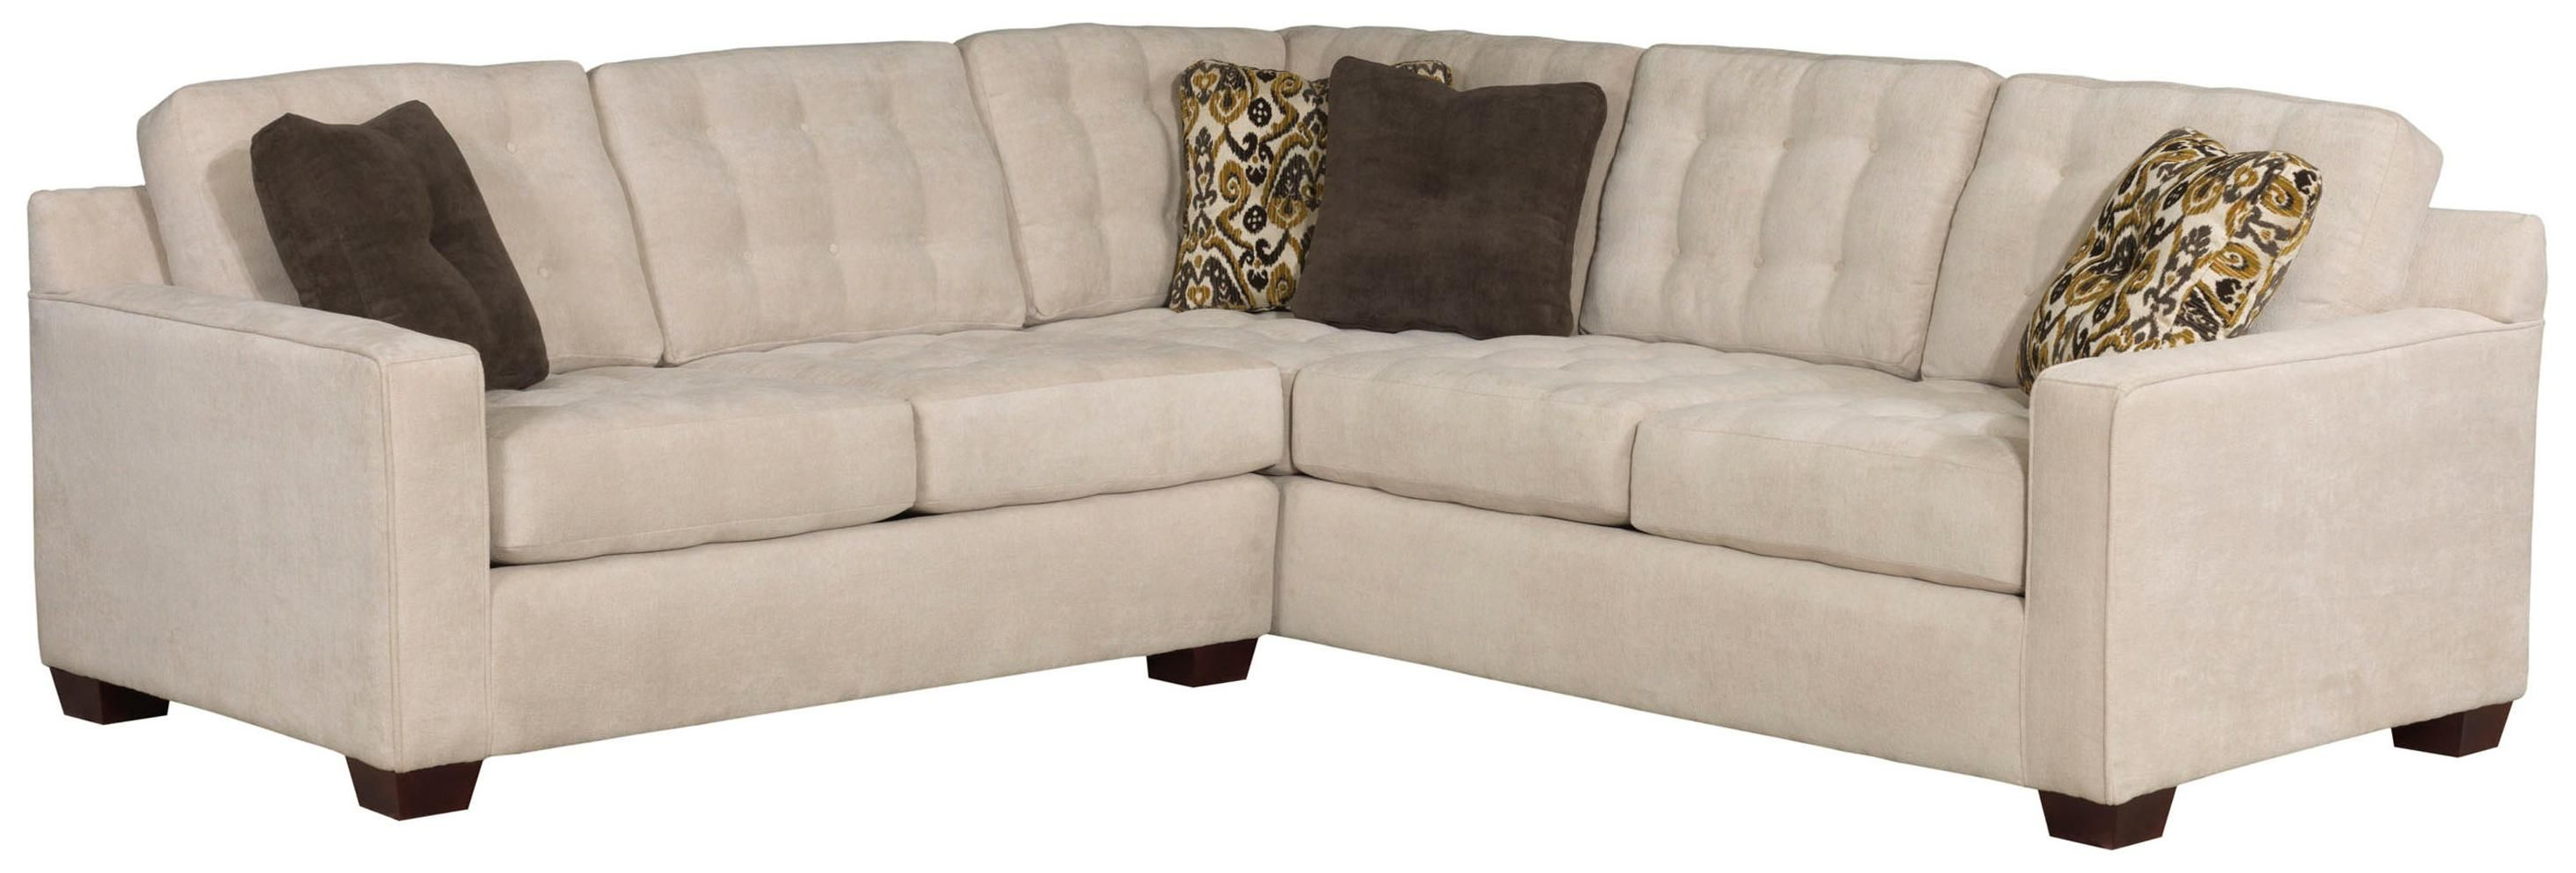 Tribeca Sectional Sofa By Broyhill Furniture #HudsonsFurniture